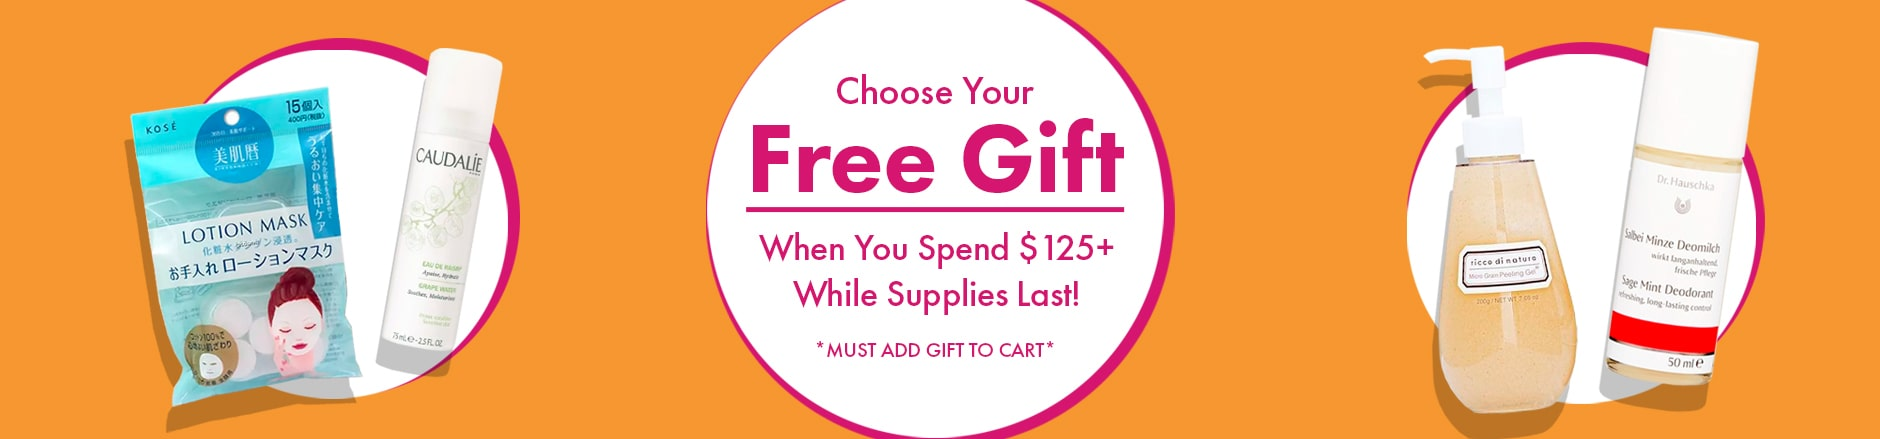 Free Gift With Purchase Promotion